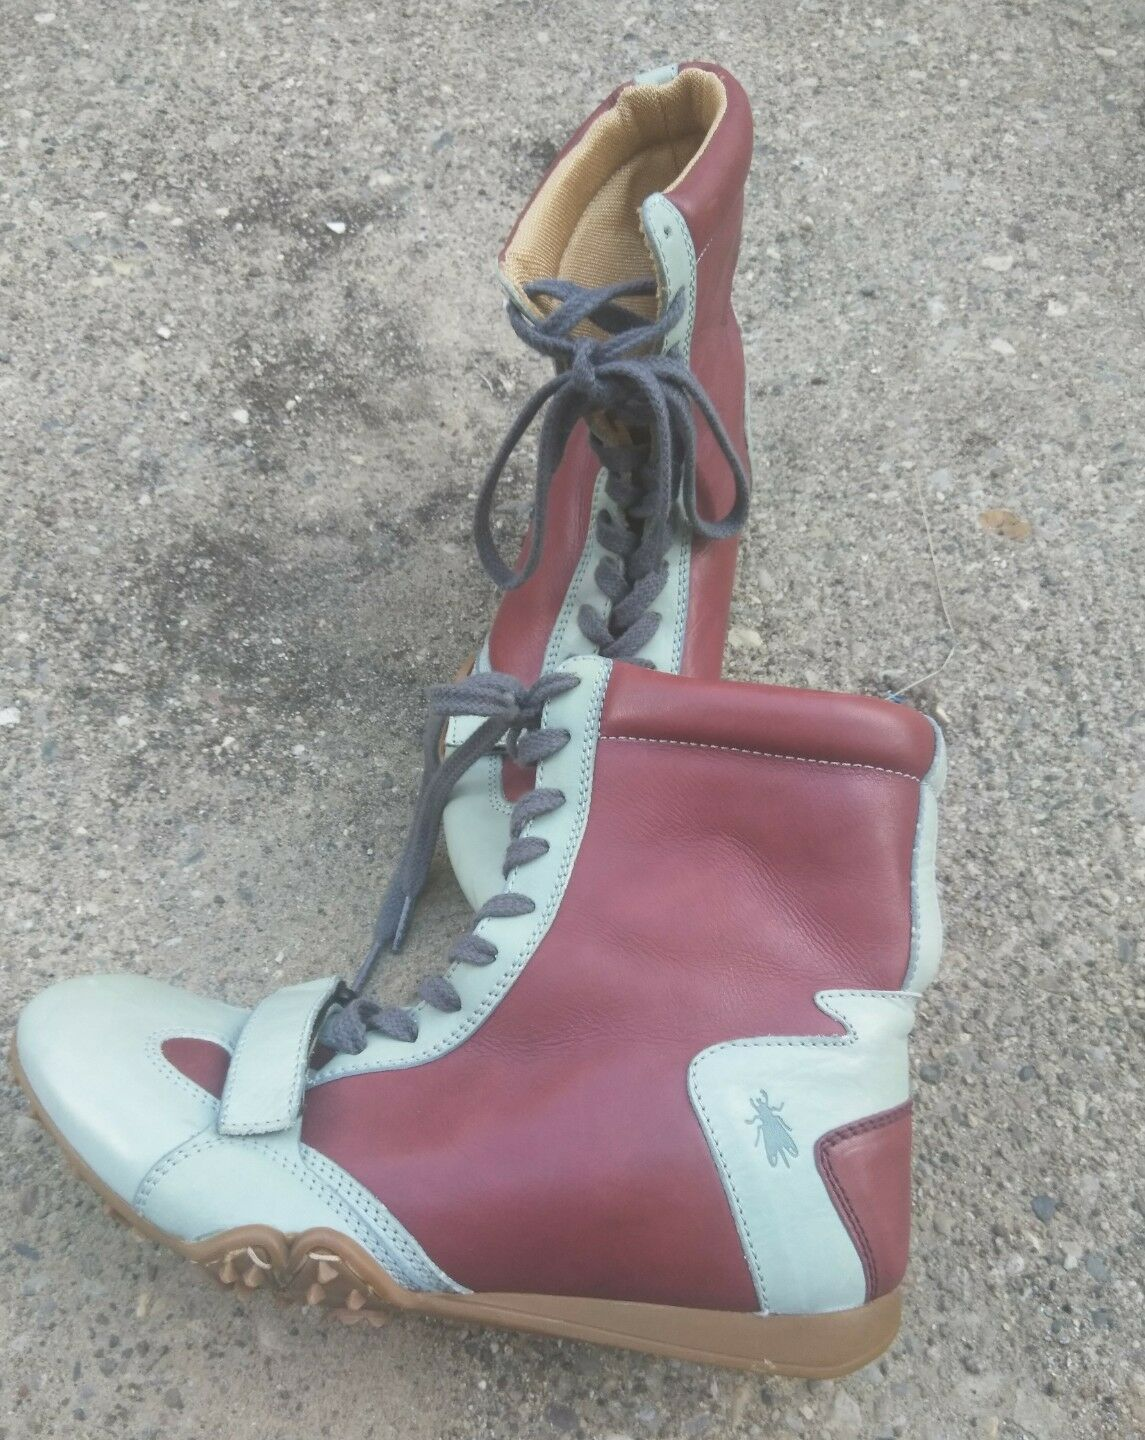 Fly london Fashionable Boots 39